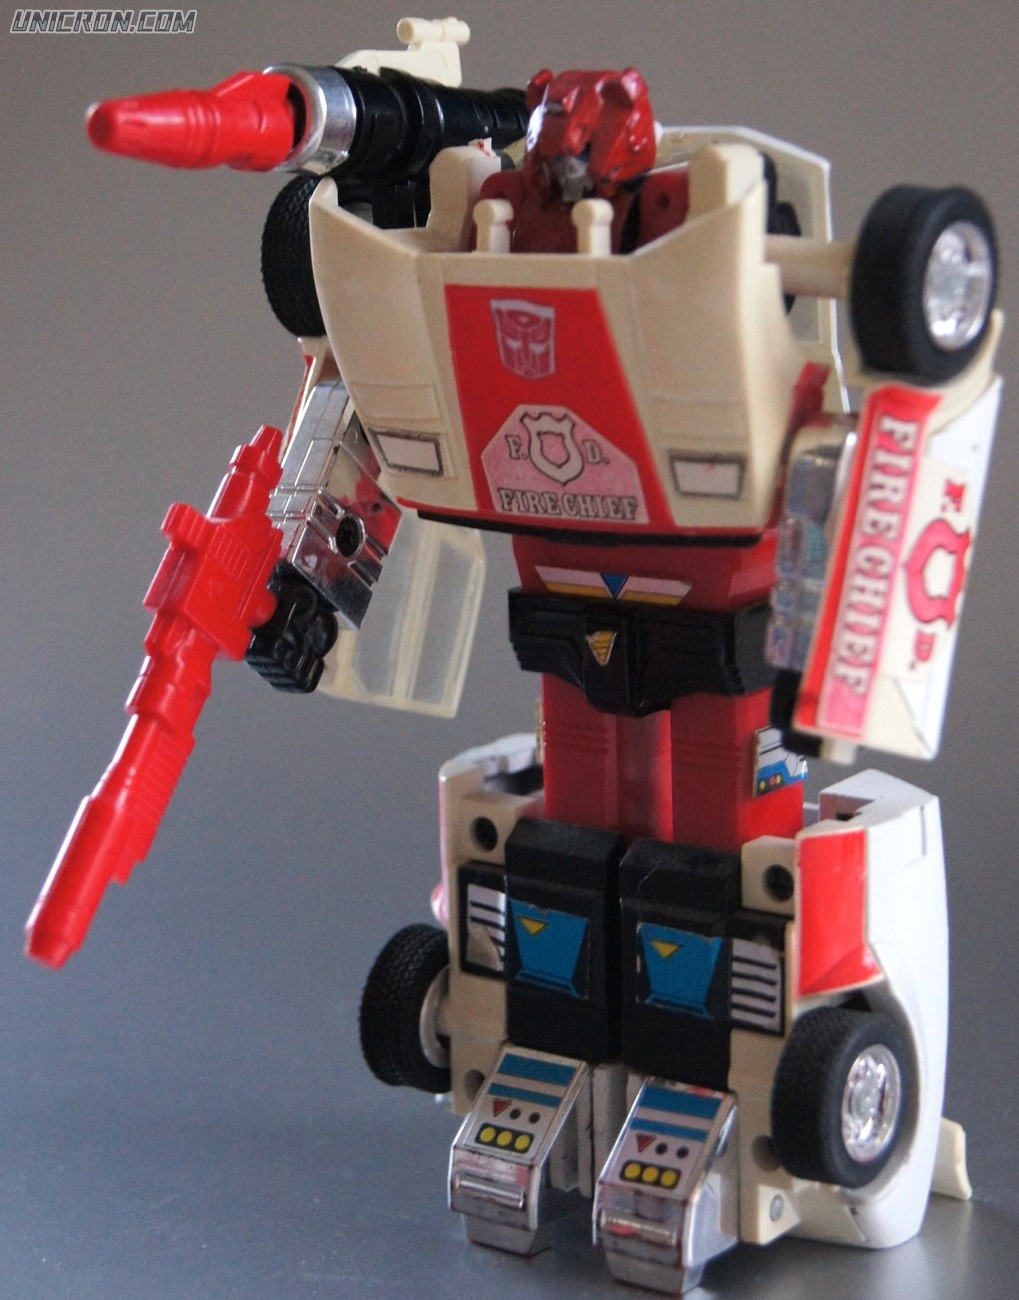 Transformers Generation 1 Red Alert toy